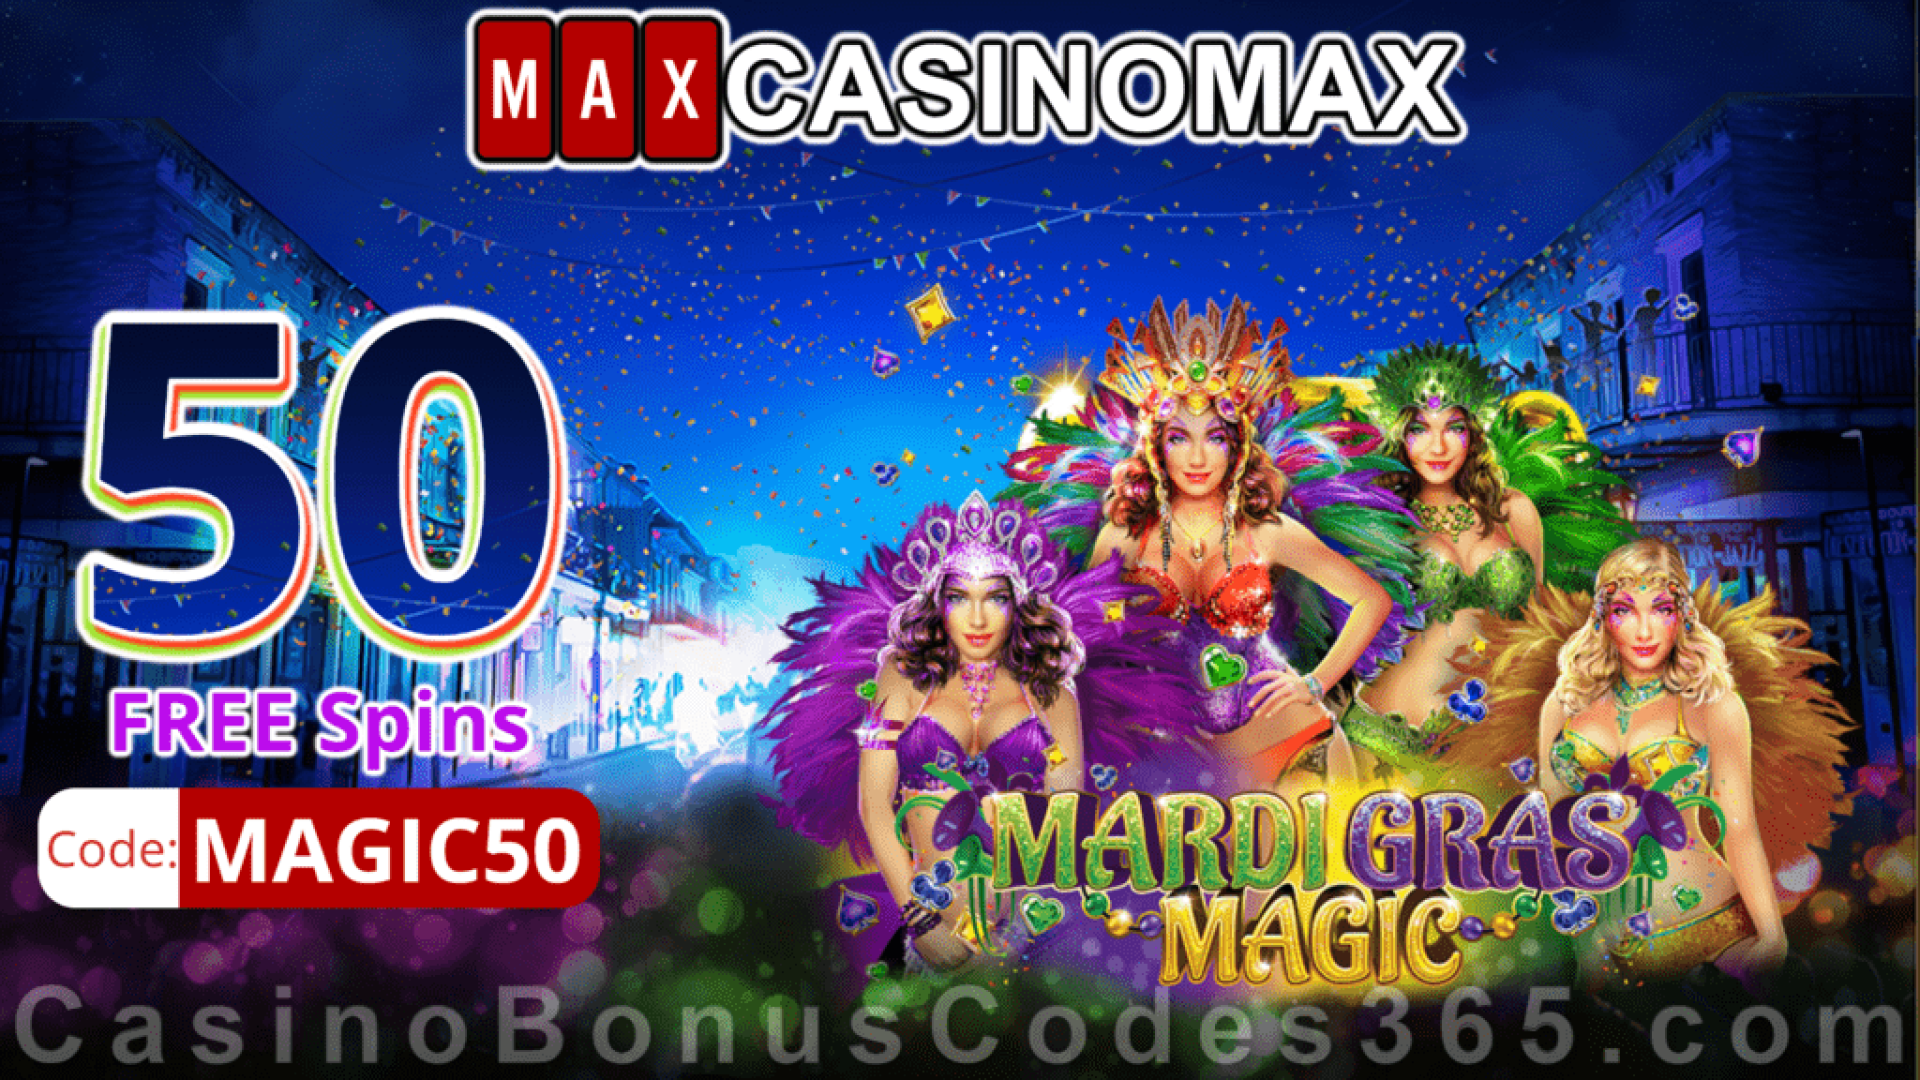 Casino Max New RTG Game 50 FREE Mardi Gras Magic Spins Special No Deposit Welcome Offer